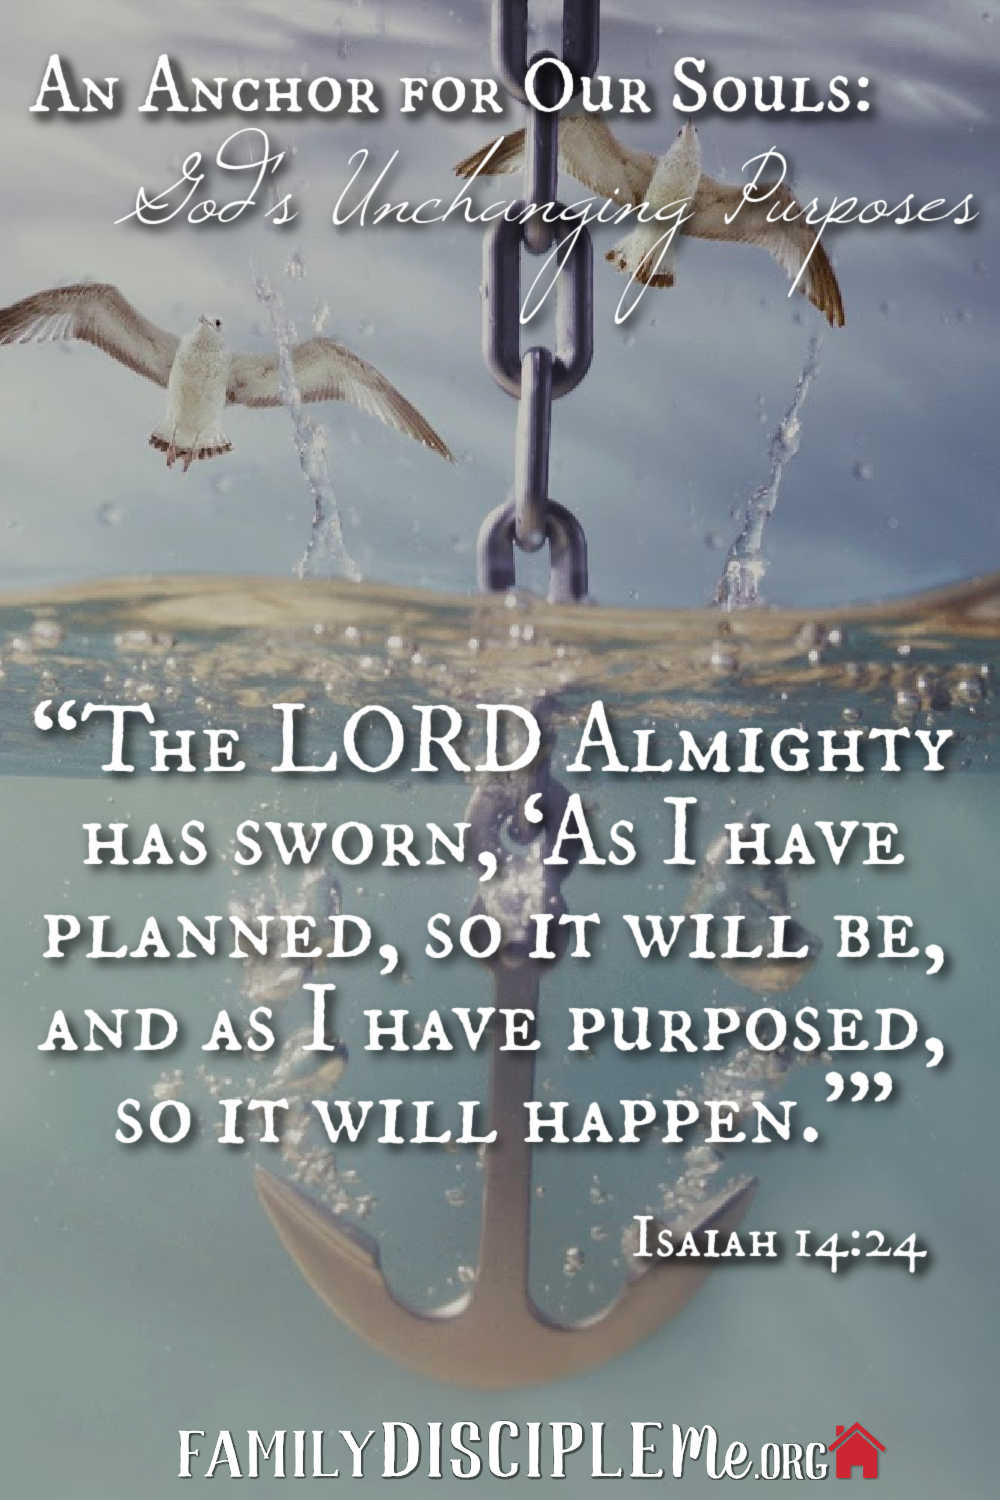 God's Unchanging Purposes